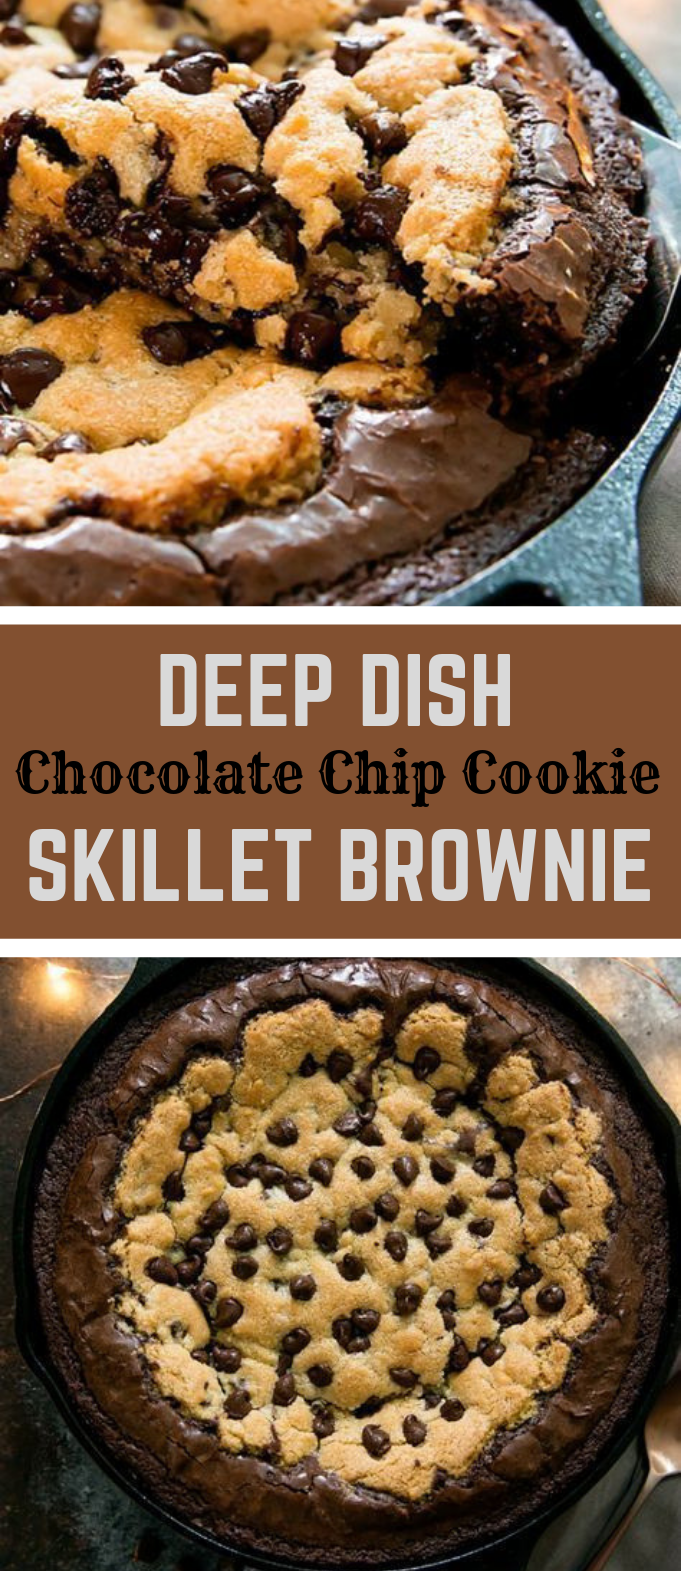 Deep Dish Chocolate Chip Cookie Skillet Brownie and Brookie Cups #brownis #chocolate